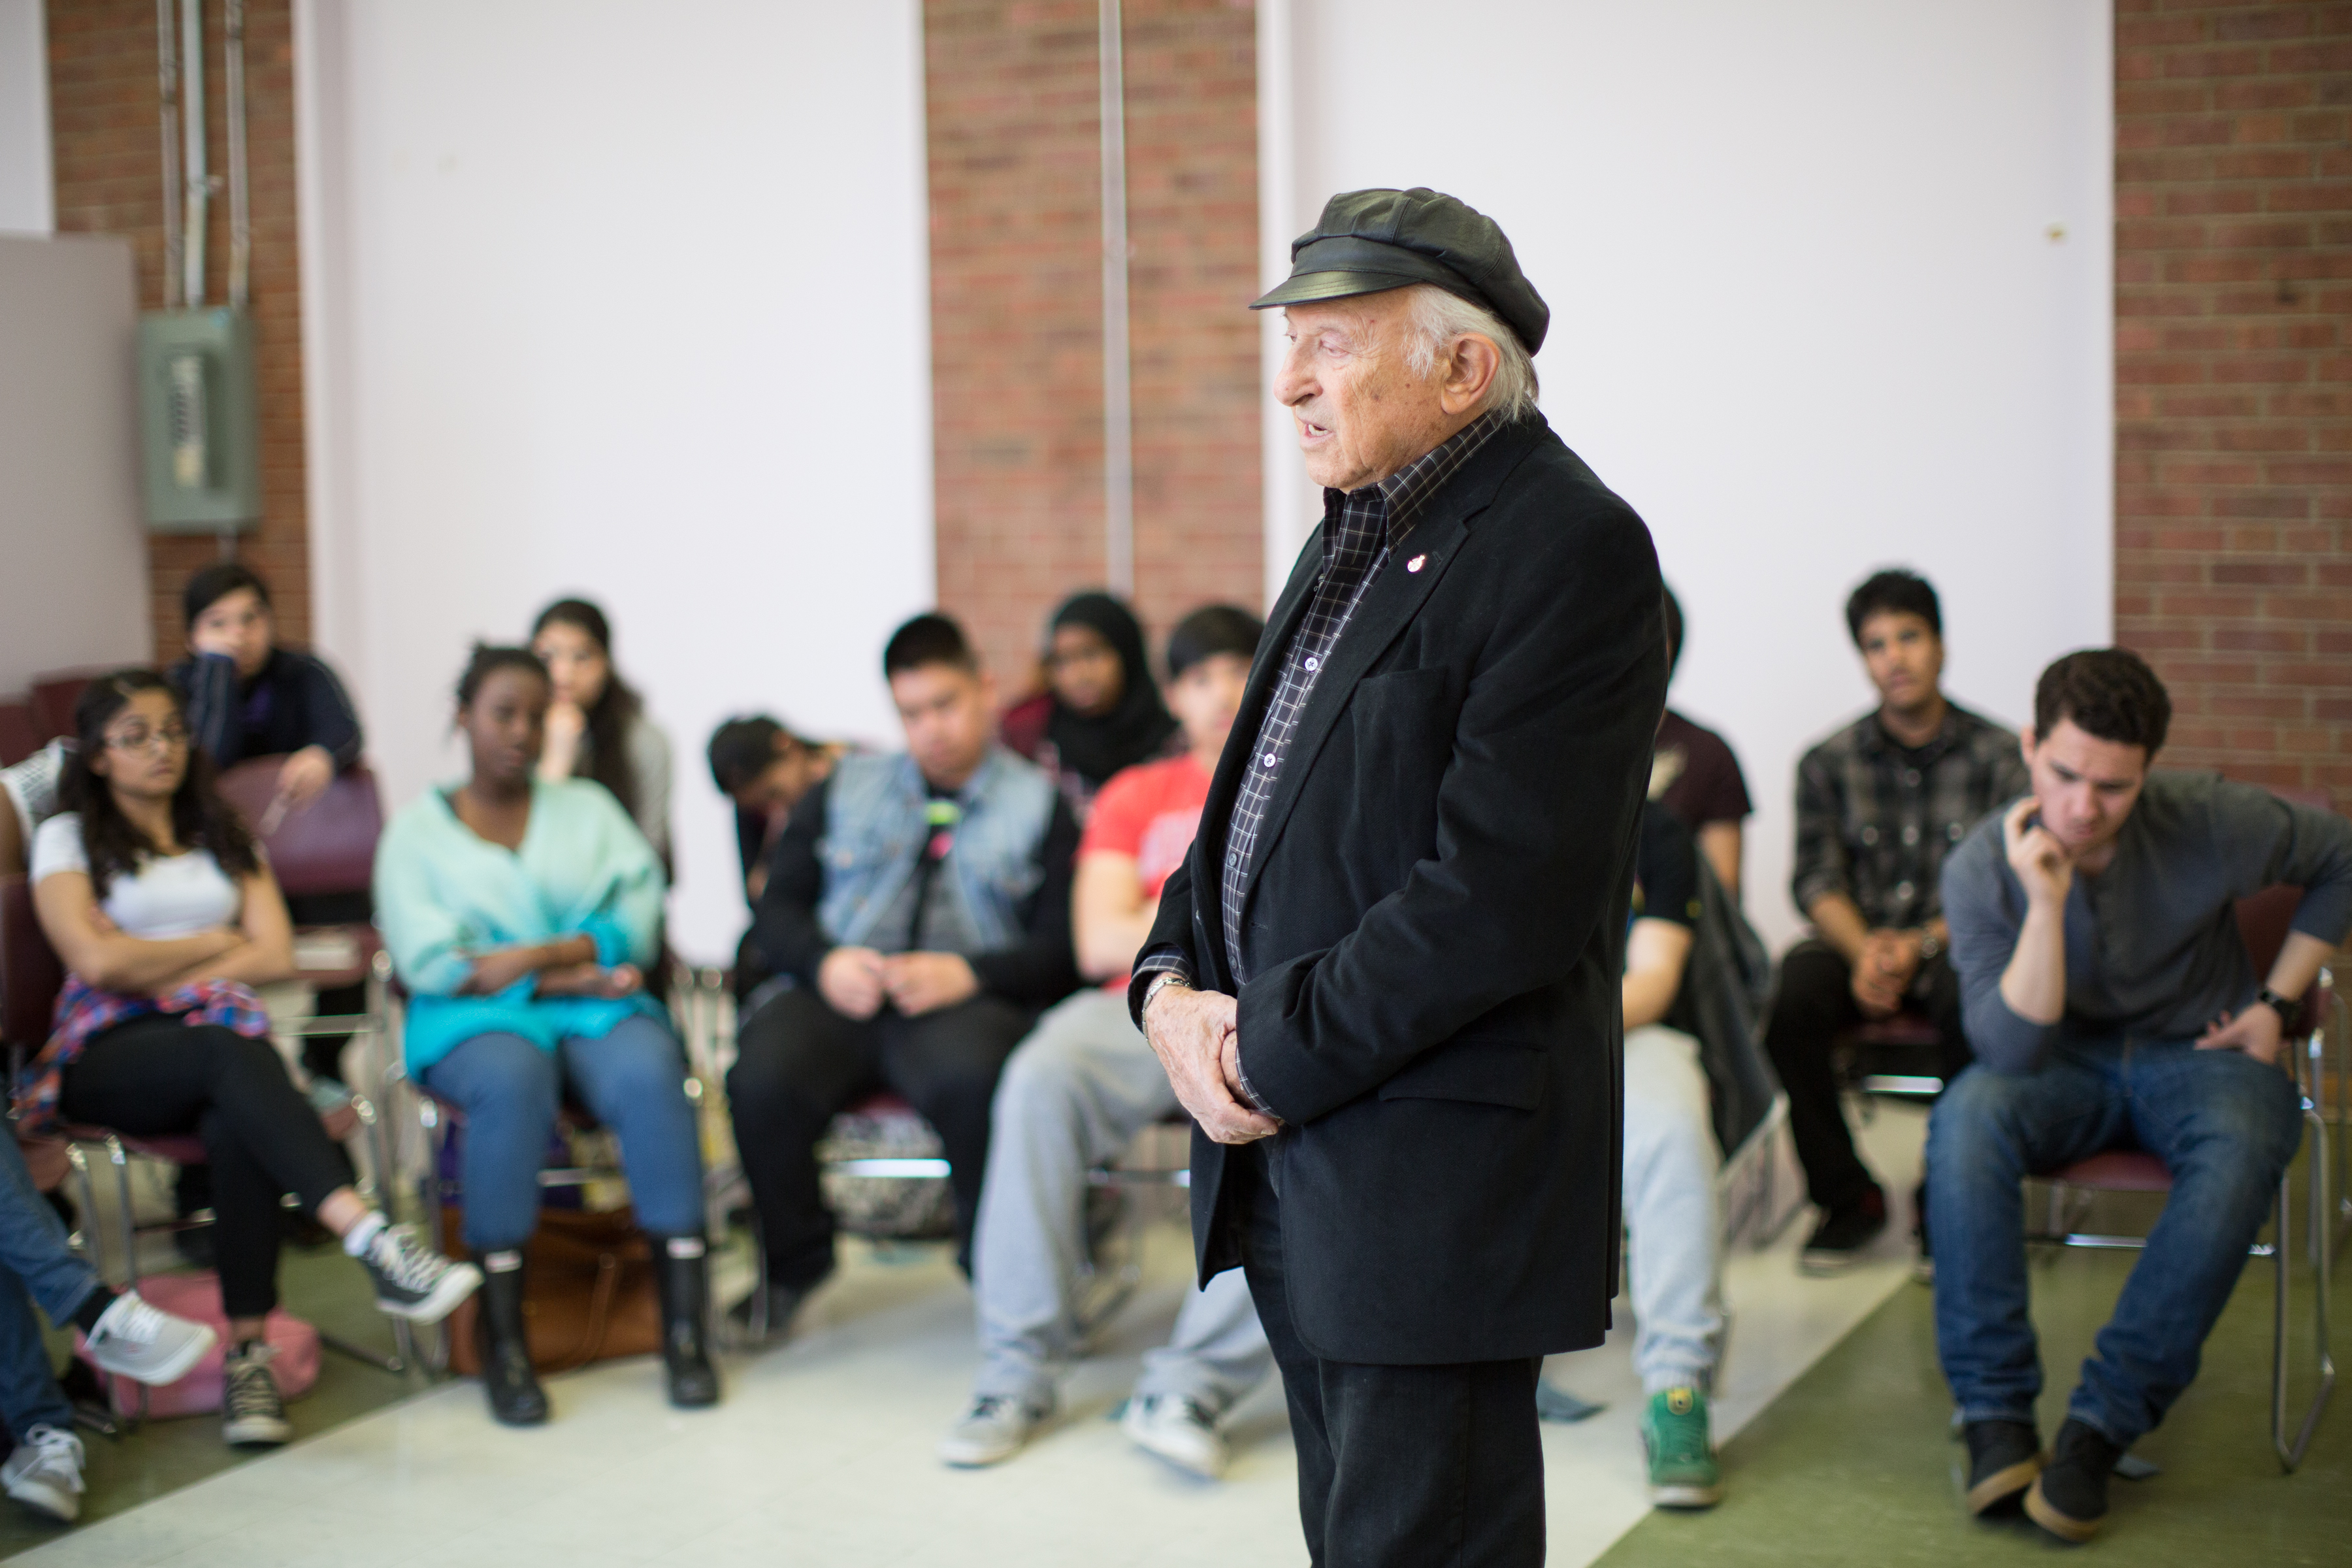 Holocaust survivor Nate Leipciger giving his testimony to students in 2014.   Photo credits: Nick Kozak